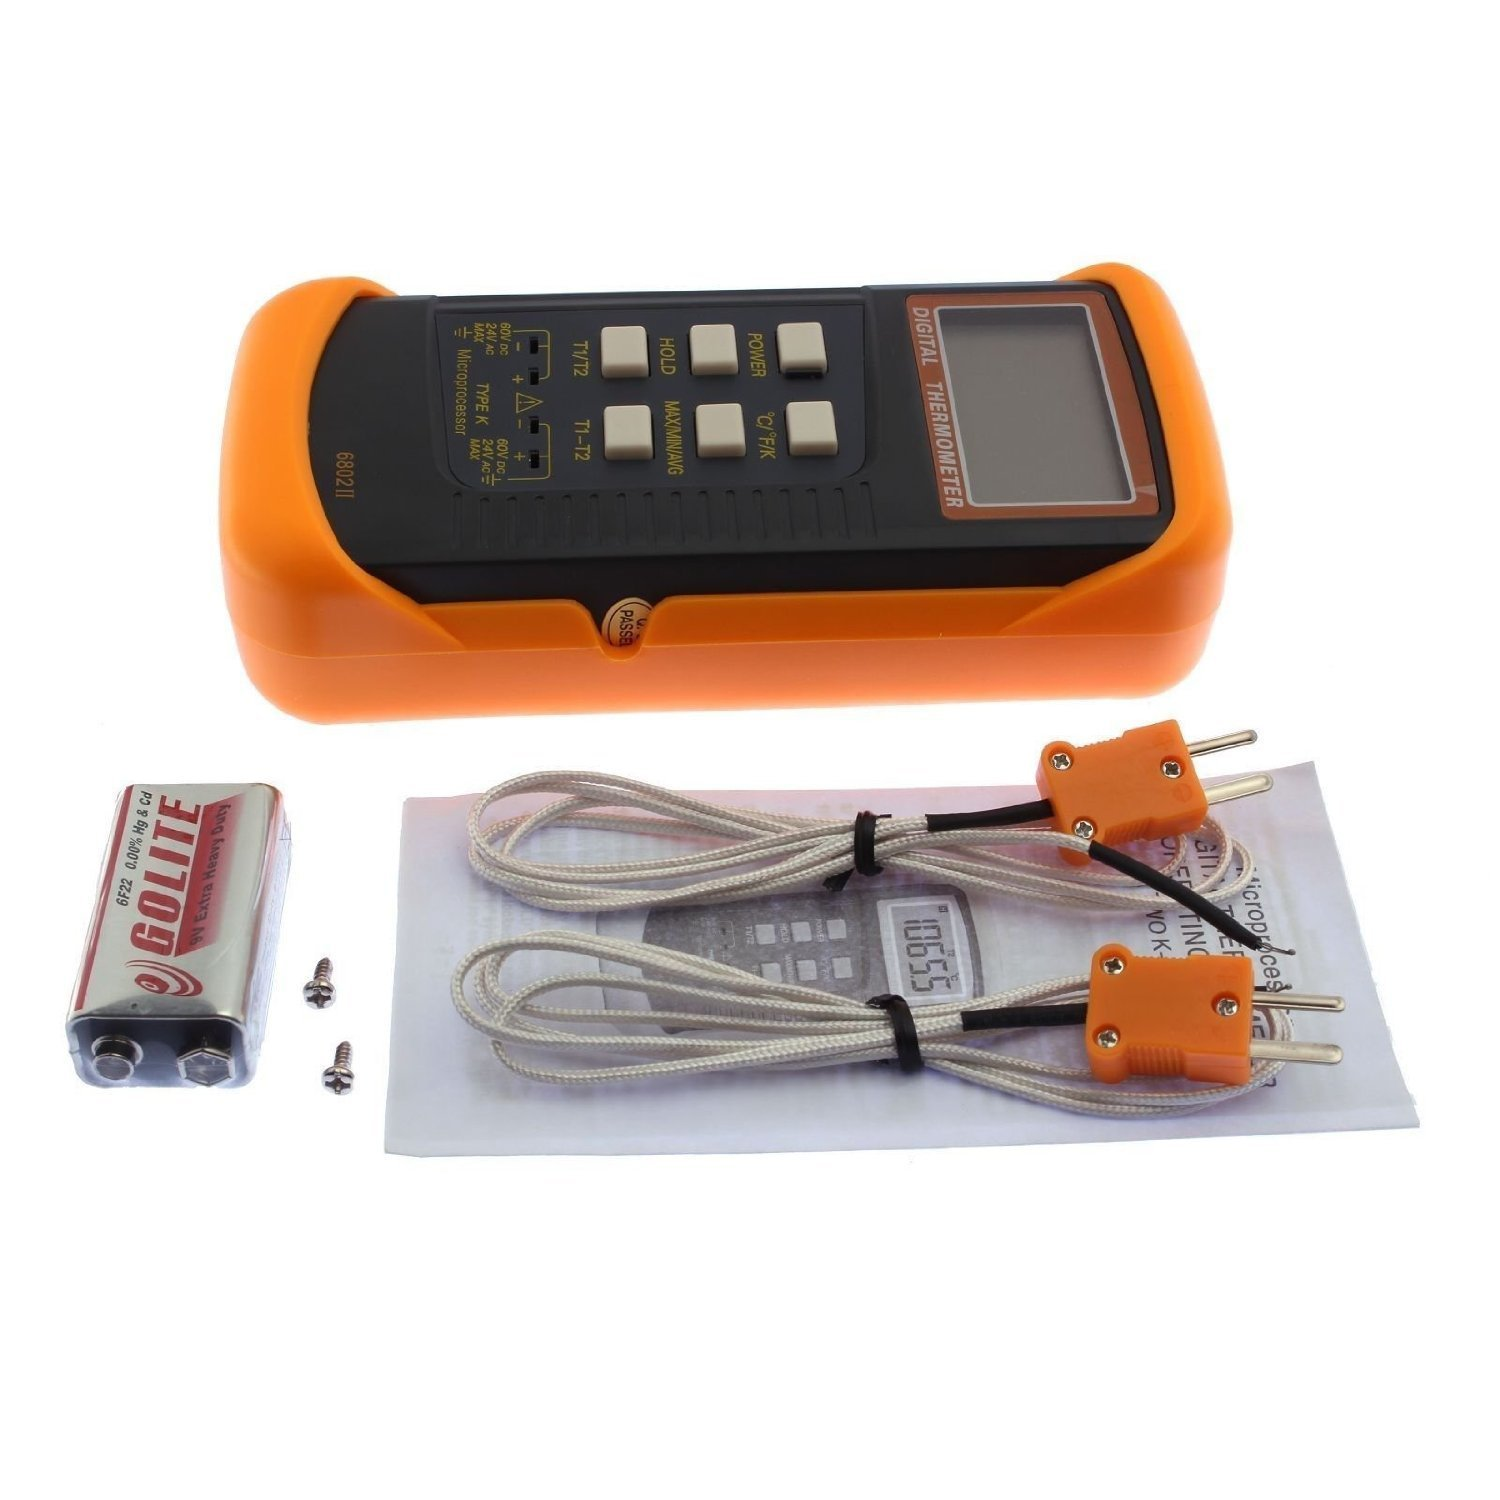 Signstek 3 1/2 6802 II Dual Channel Digital Thermometer -58°F~1022°F(-50~1300°C) with 2 K-Type Thermocouple Sensor Probe by Signstek (Image #1)